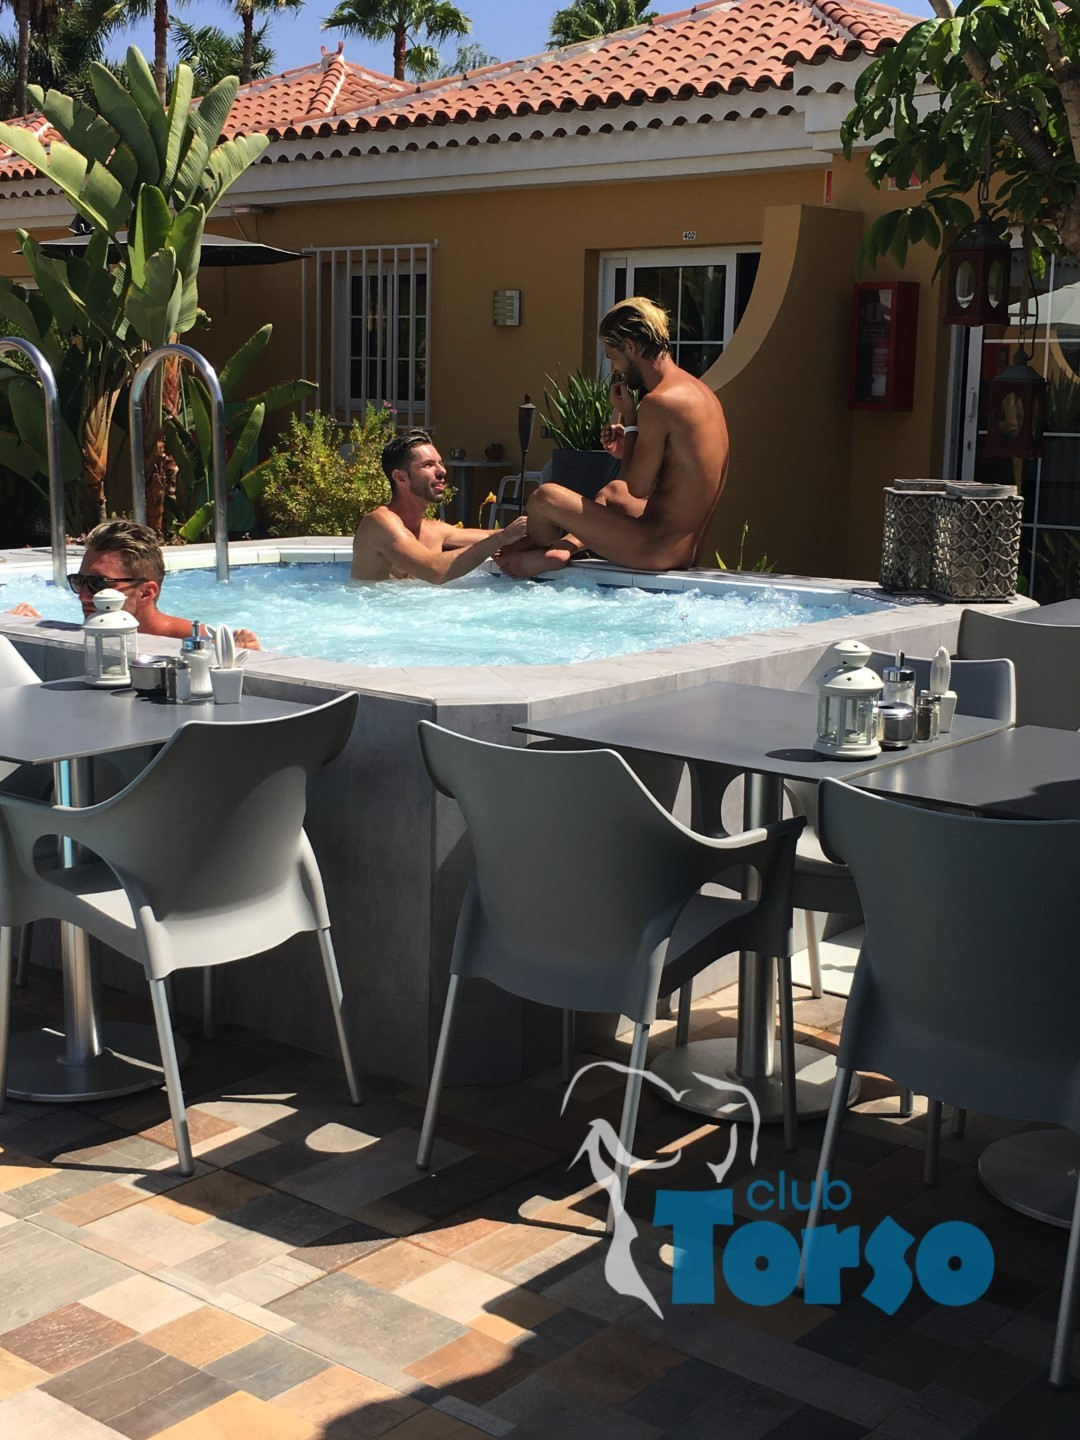 Gay Resort Hotel Club torso Gran Canaria jacuzzi